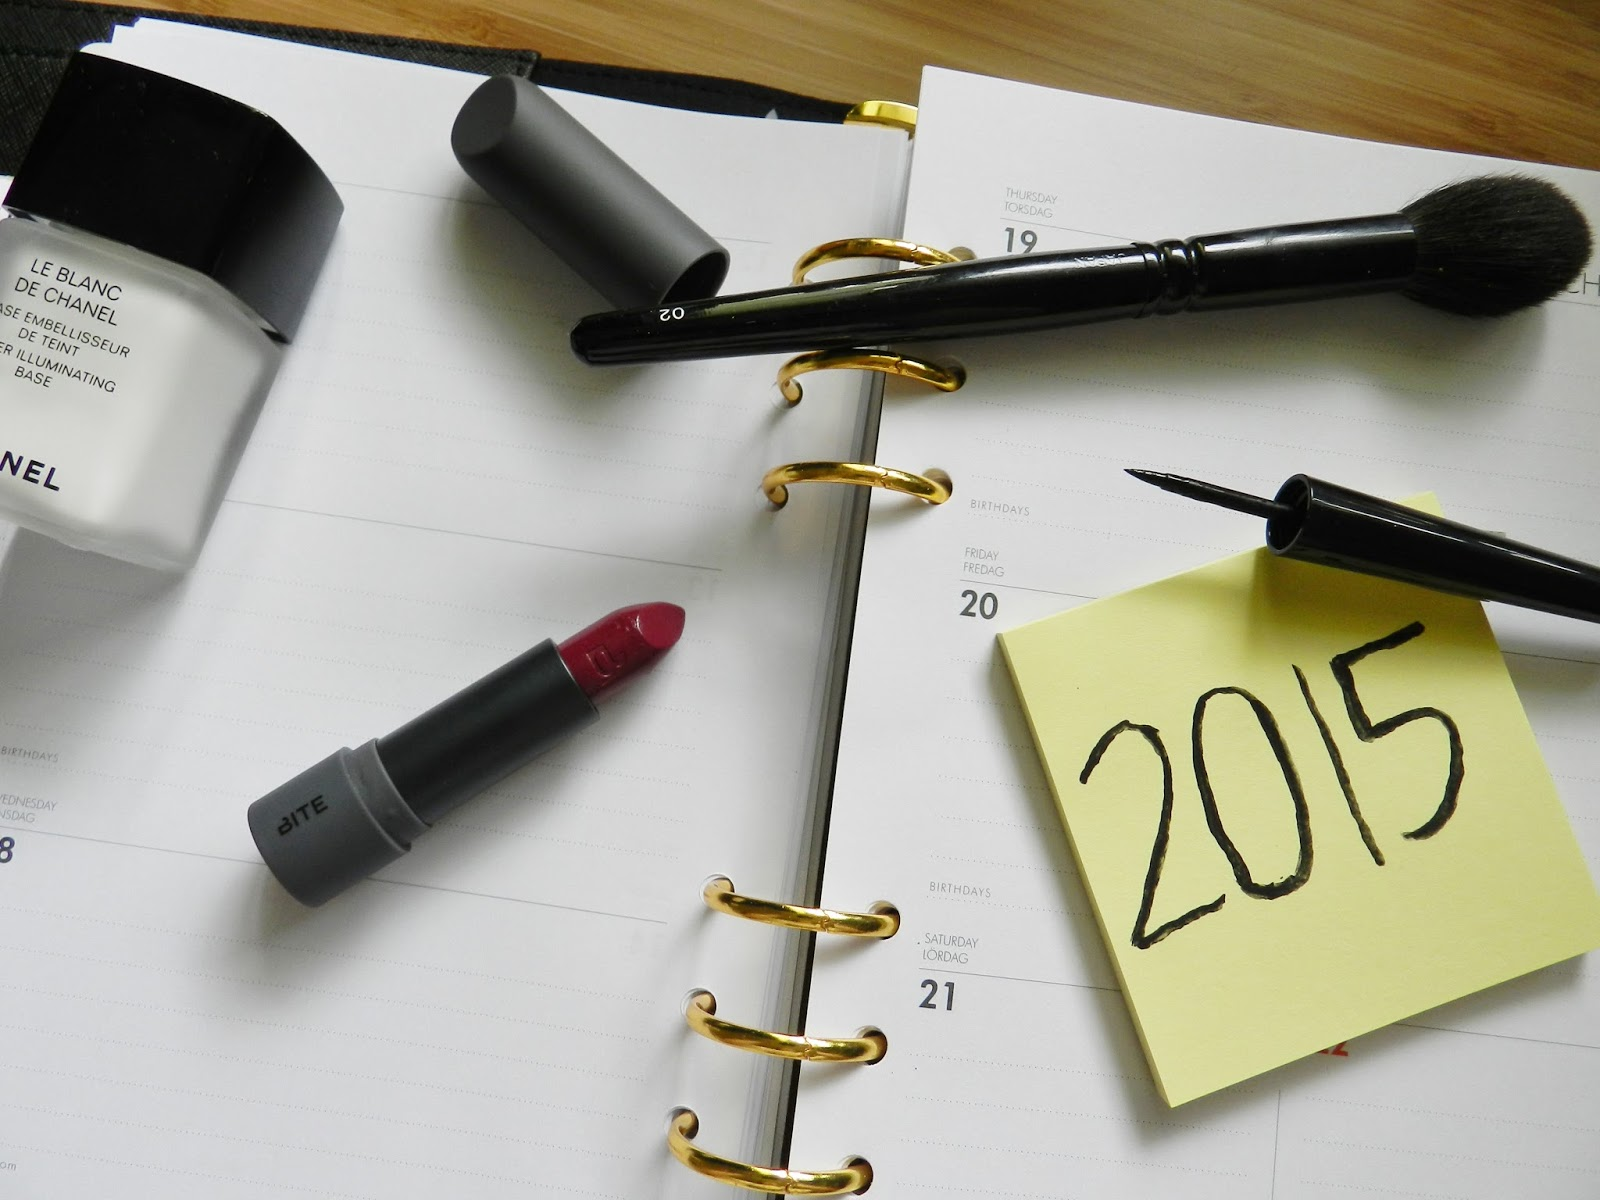 http://www.ellenrozalia.com/2015/01/new-year-beauty-resolutions.html